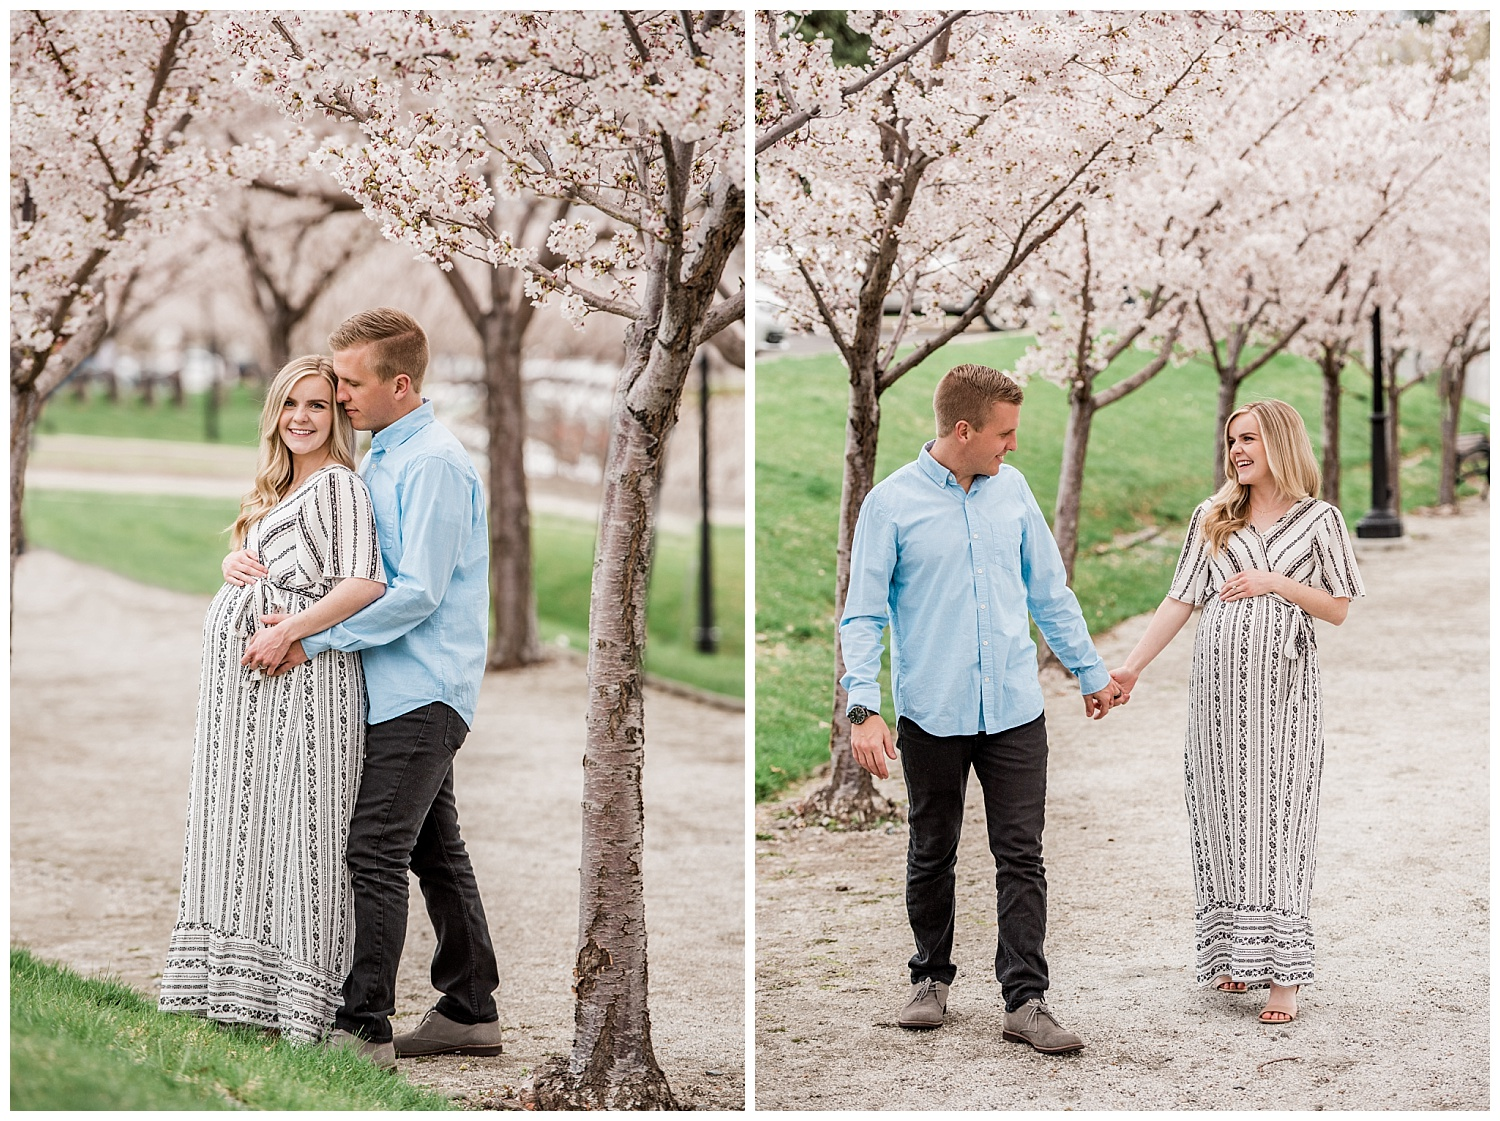 Dan Page Photography, Utah State Capitol Maternity Session, Spring Cherry Blossoms (13).jpg